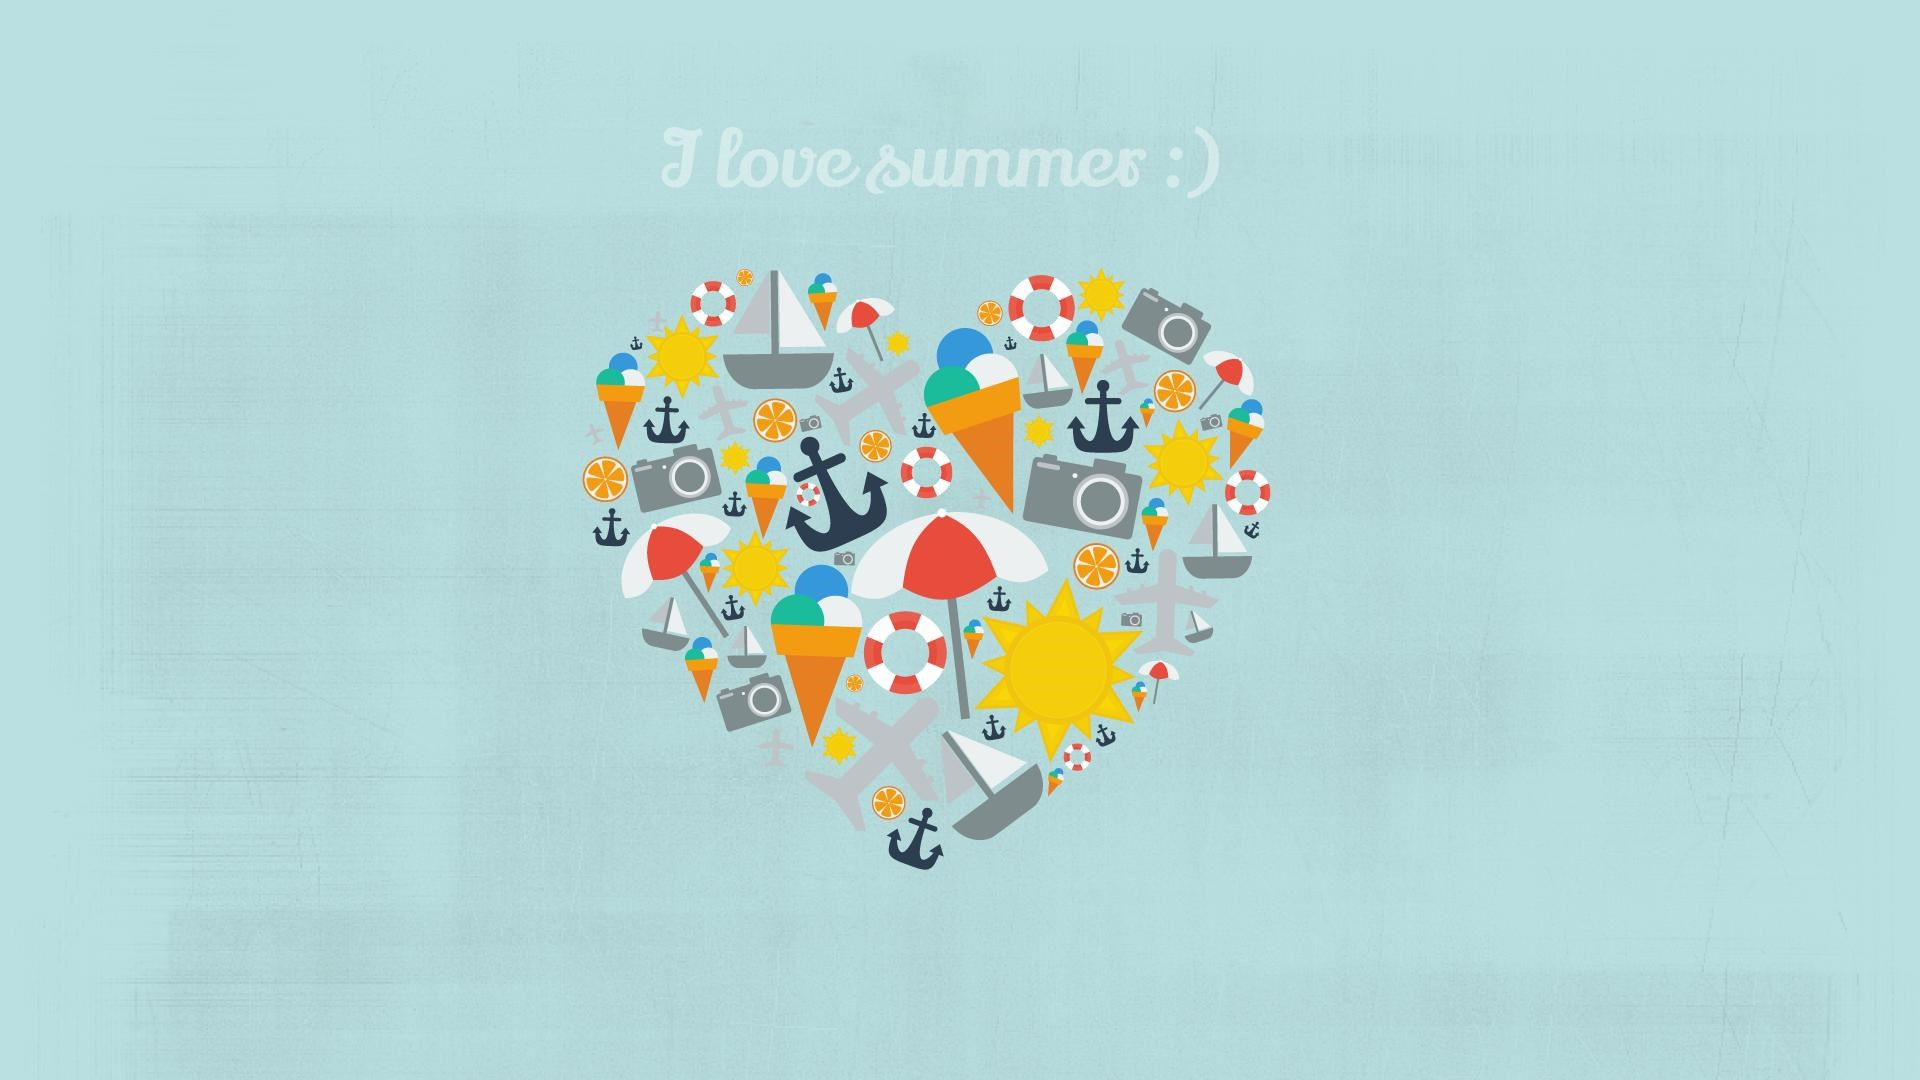 I Love Summers Heart Art HD Wallpaper